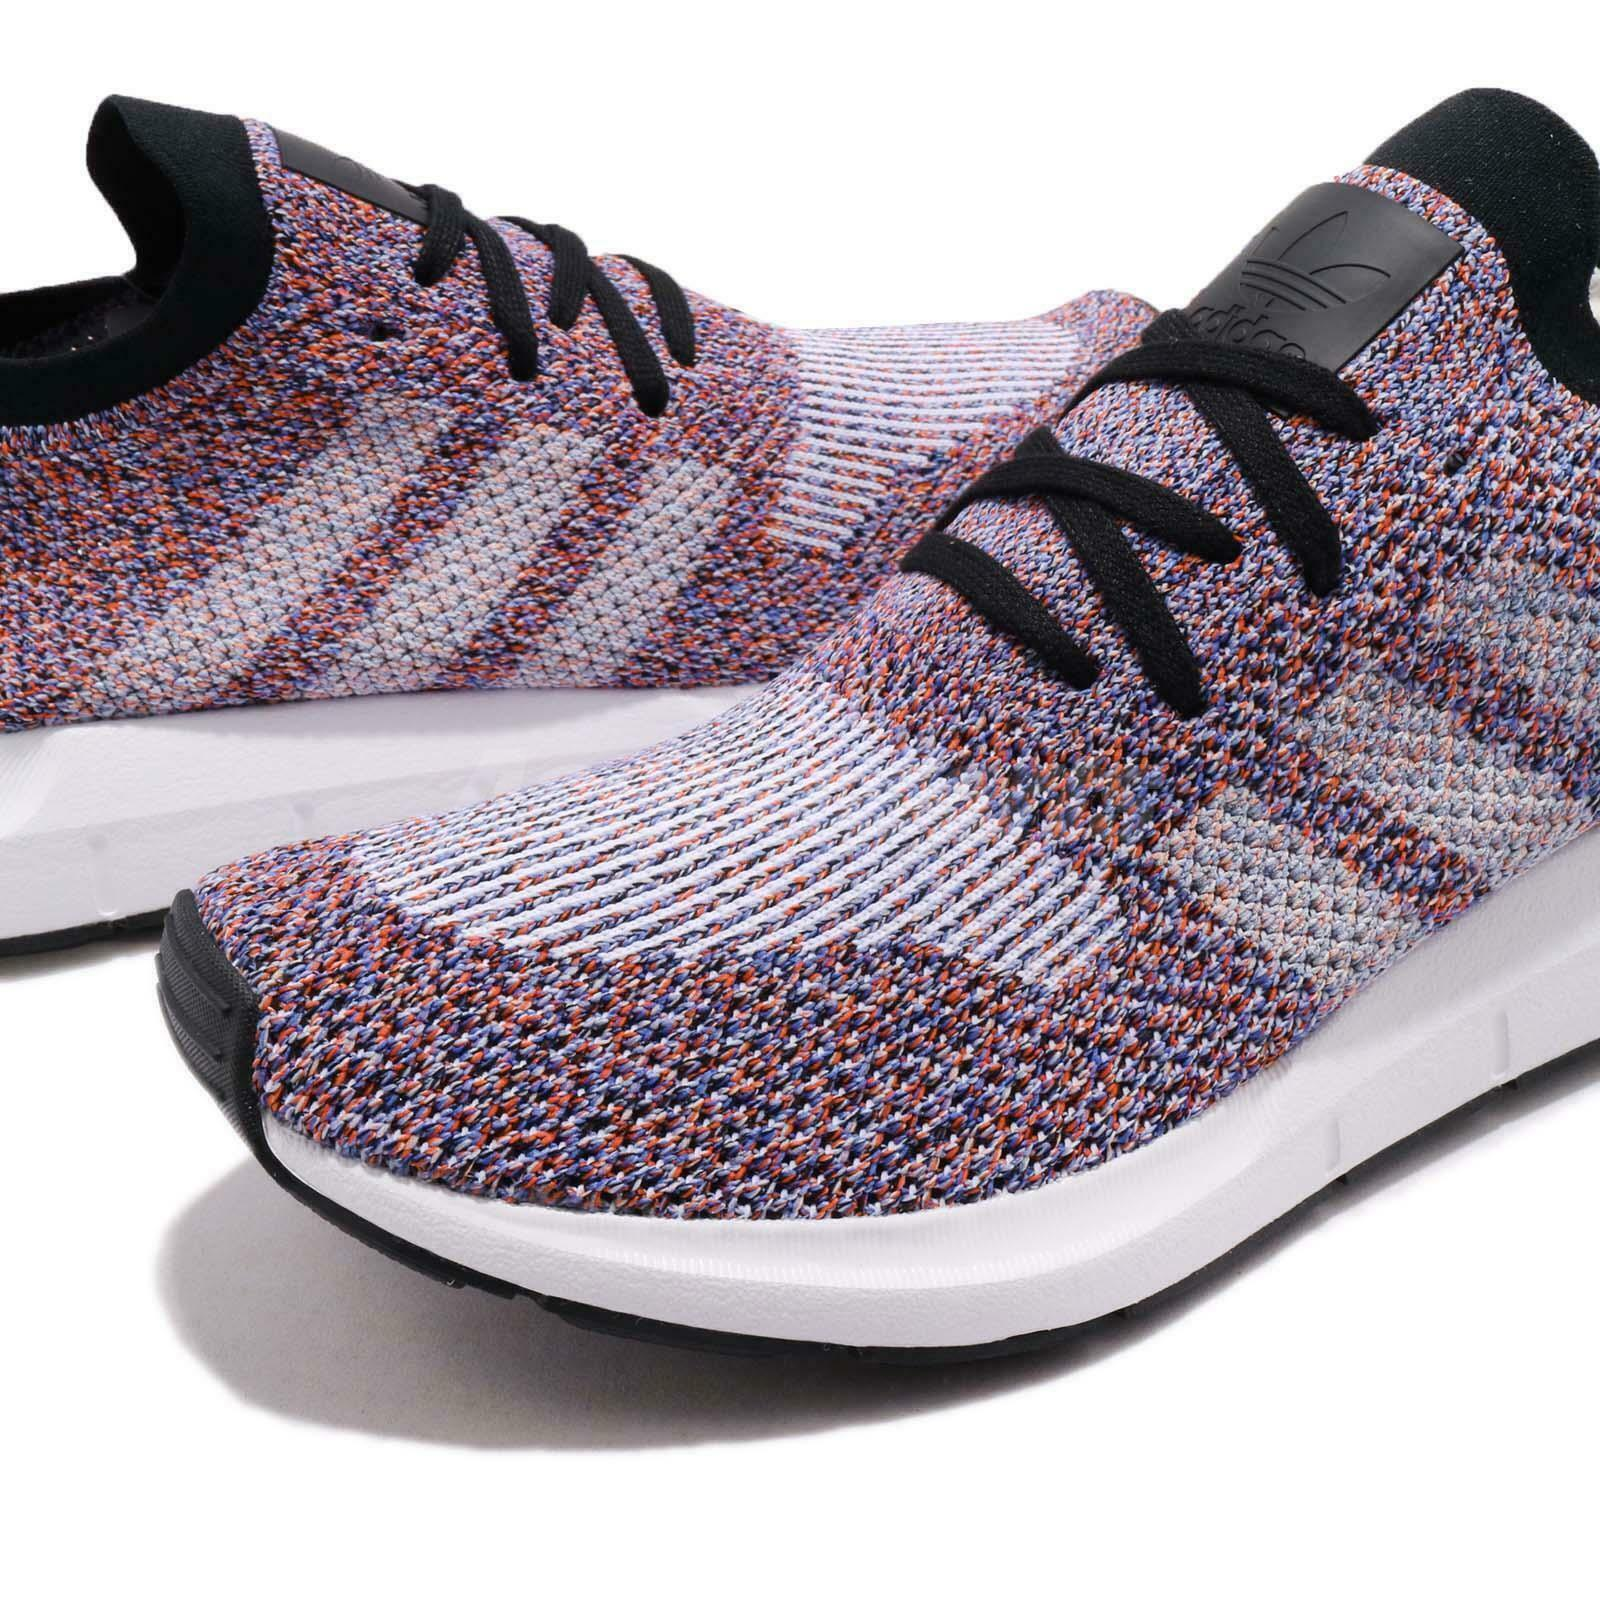 ADIDAS SWIFT RUNNING PK LOW SNEAKERS MEN SHOES MULTI SNOW CQ2896 SIZE 11 NEW